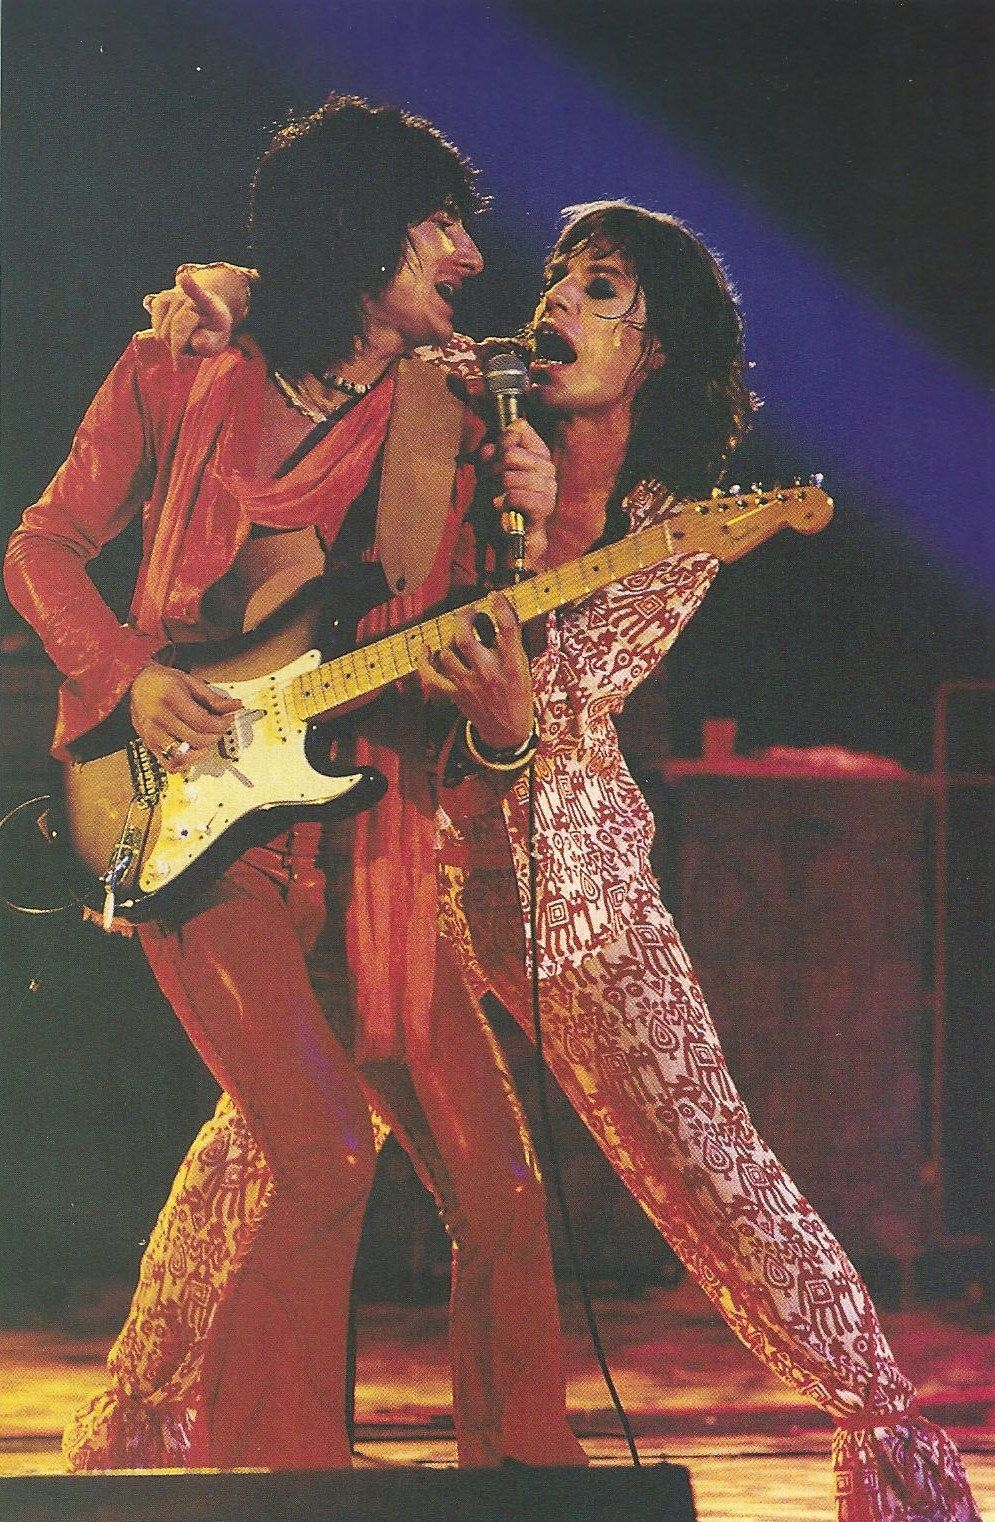 RON WOOD ET MICK JAGGER (1975) - Neil Zlozower  beautiful-name-is-beautiful:    Mick and Ronnie in concert in July 1975, by Neil Zlozower.